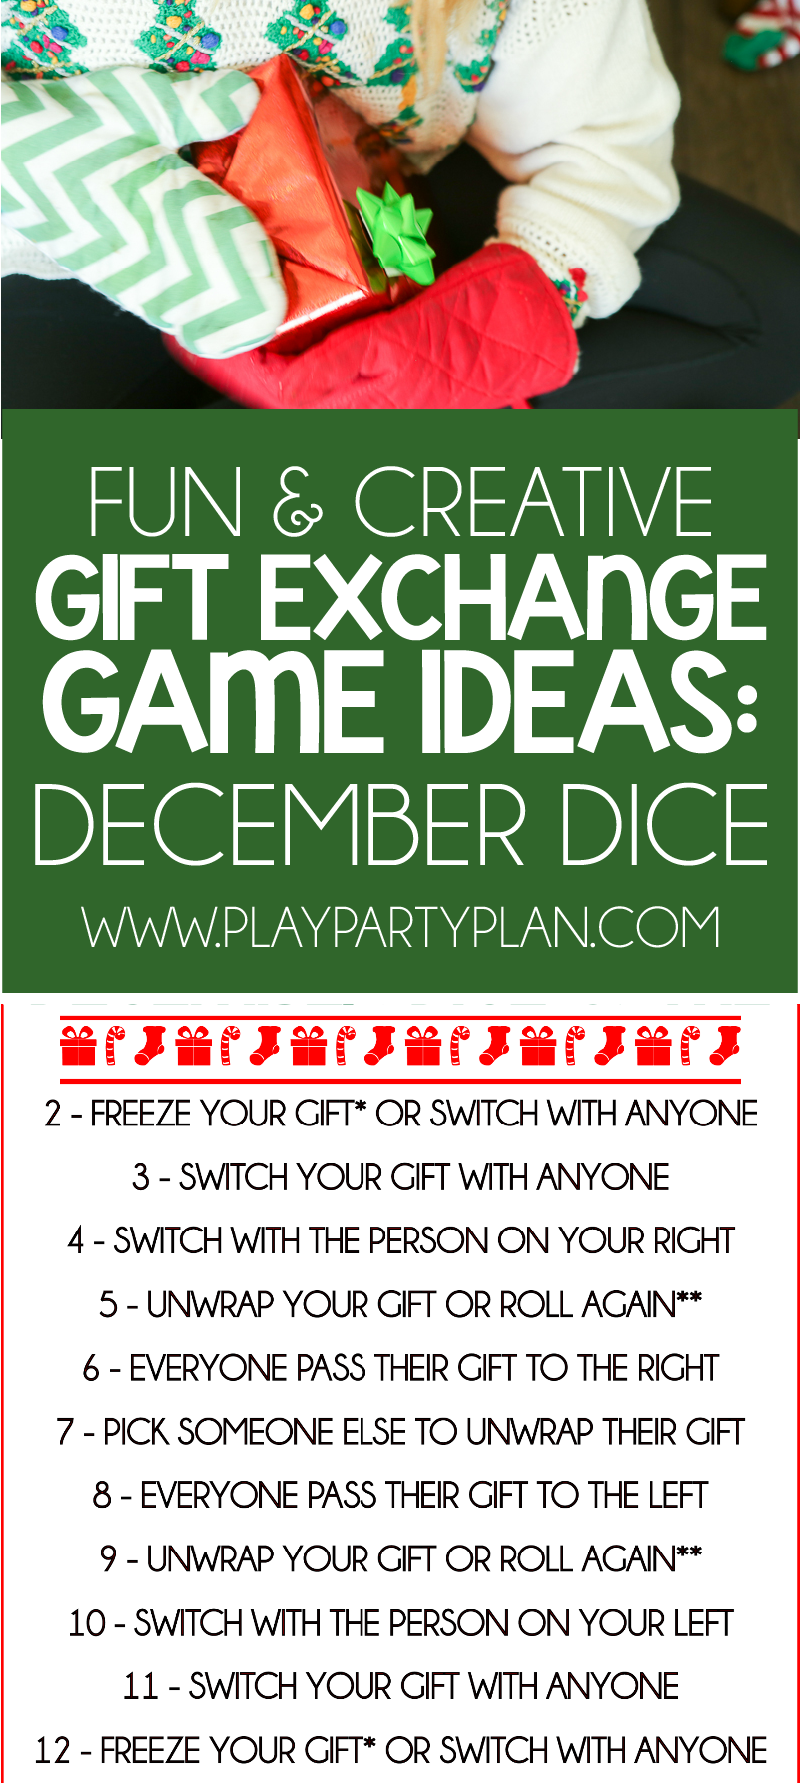 These Gift Exchange Ideas Are The Most Unique And Creative Gift